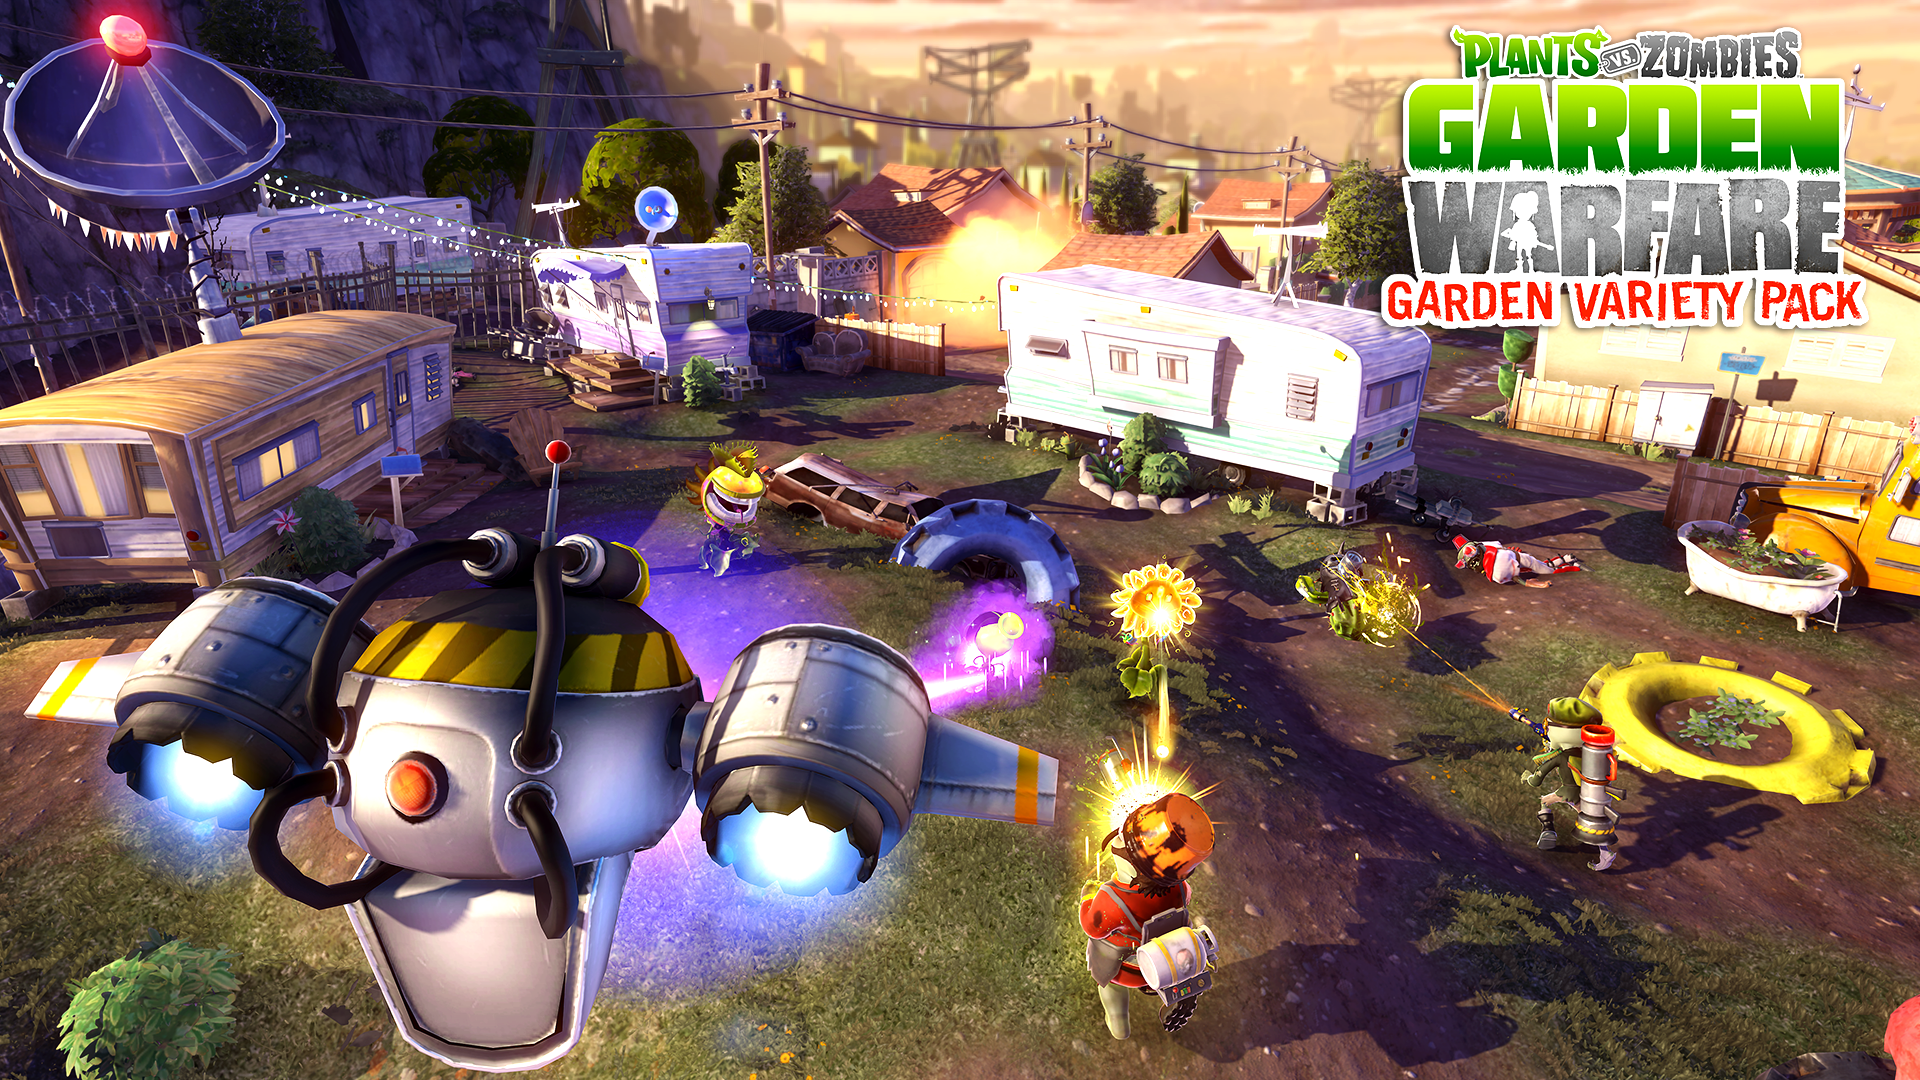 plants vs zombies garden warfare wallpaper 49037 1920x1080 px